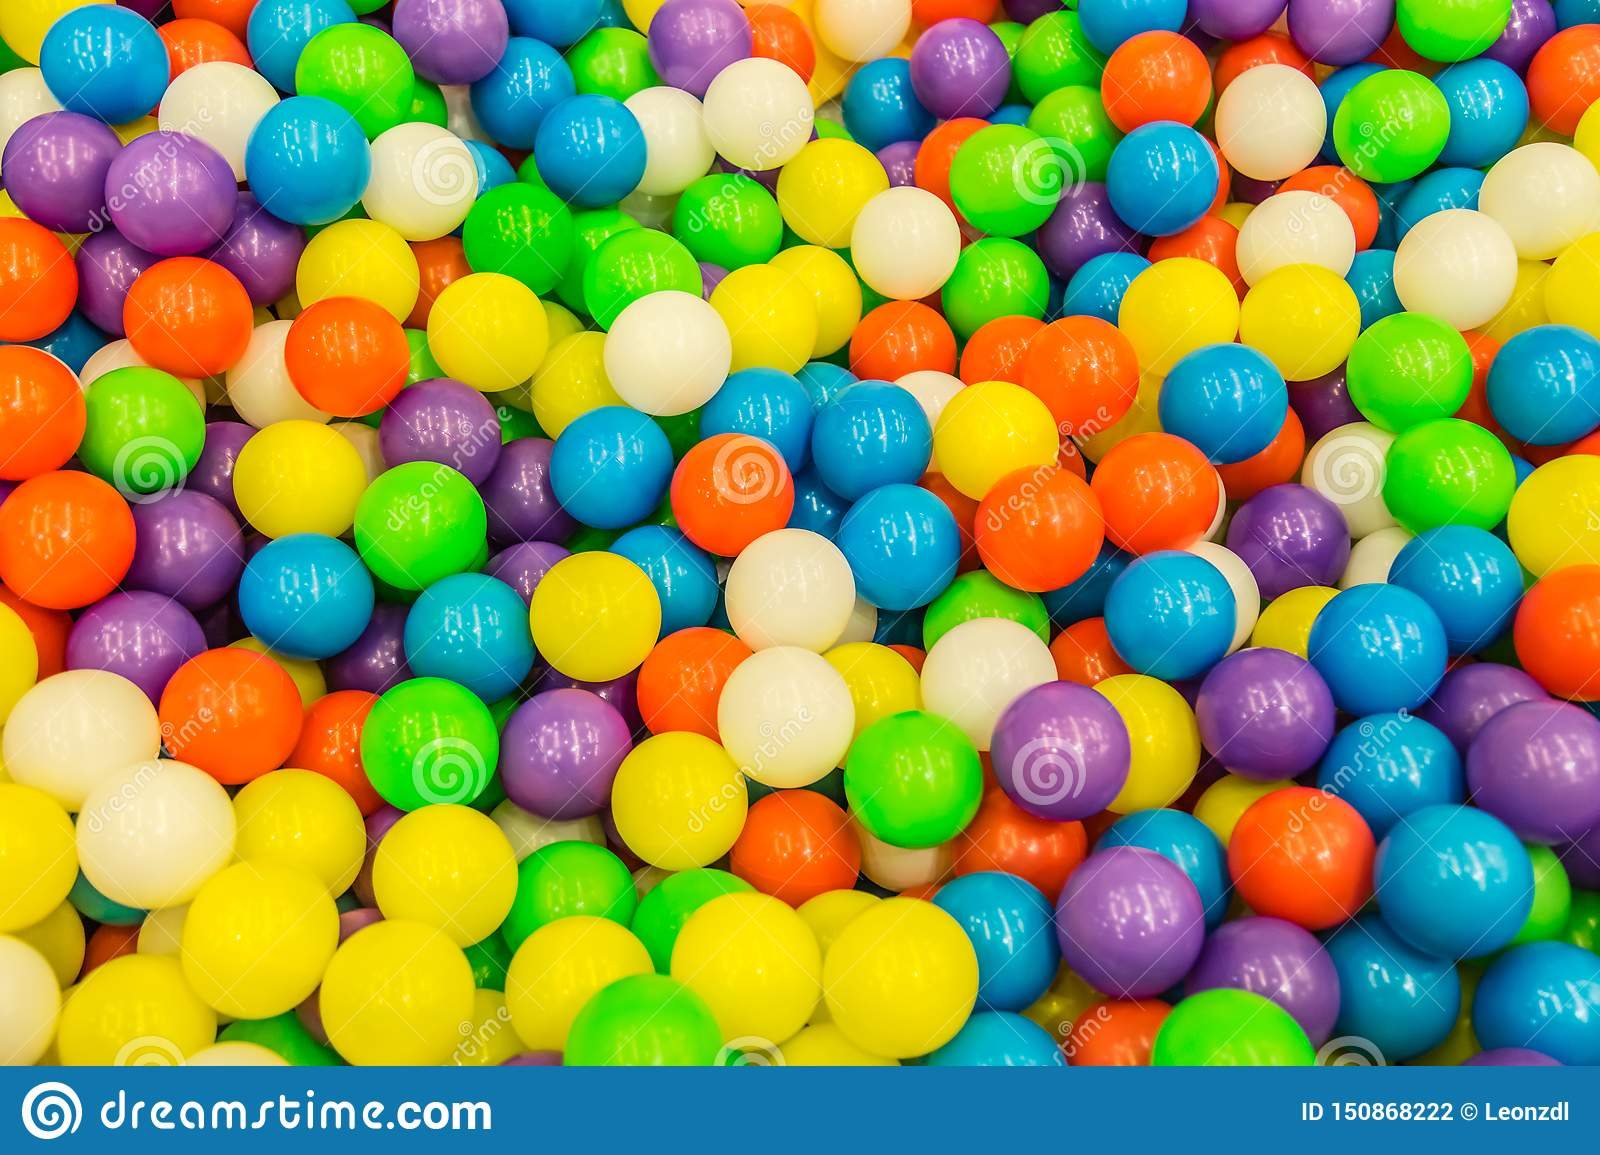 Lots colorful plastic balls for background view